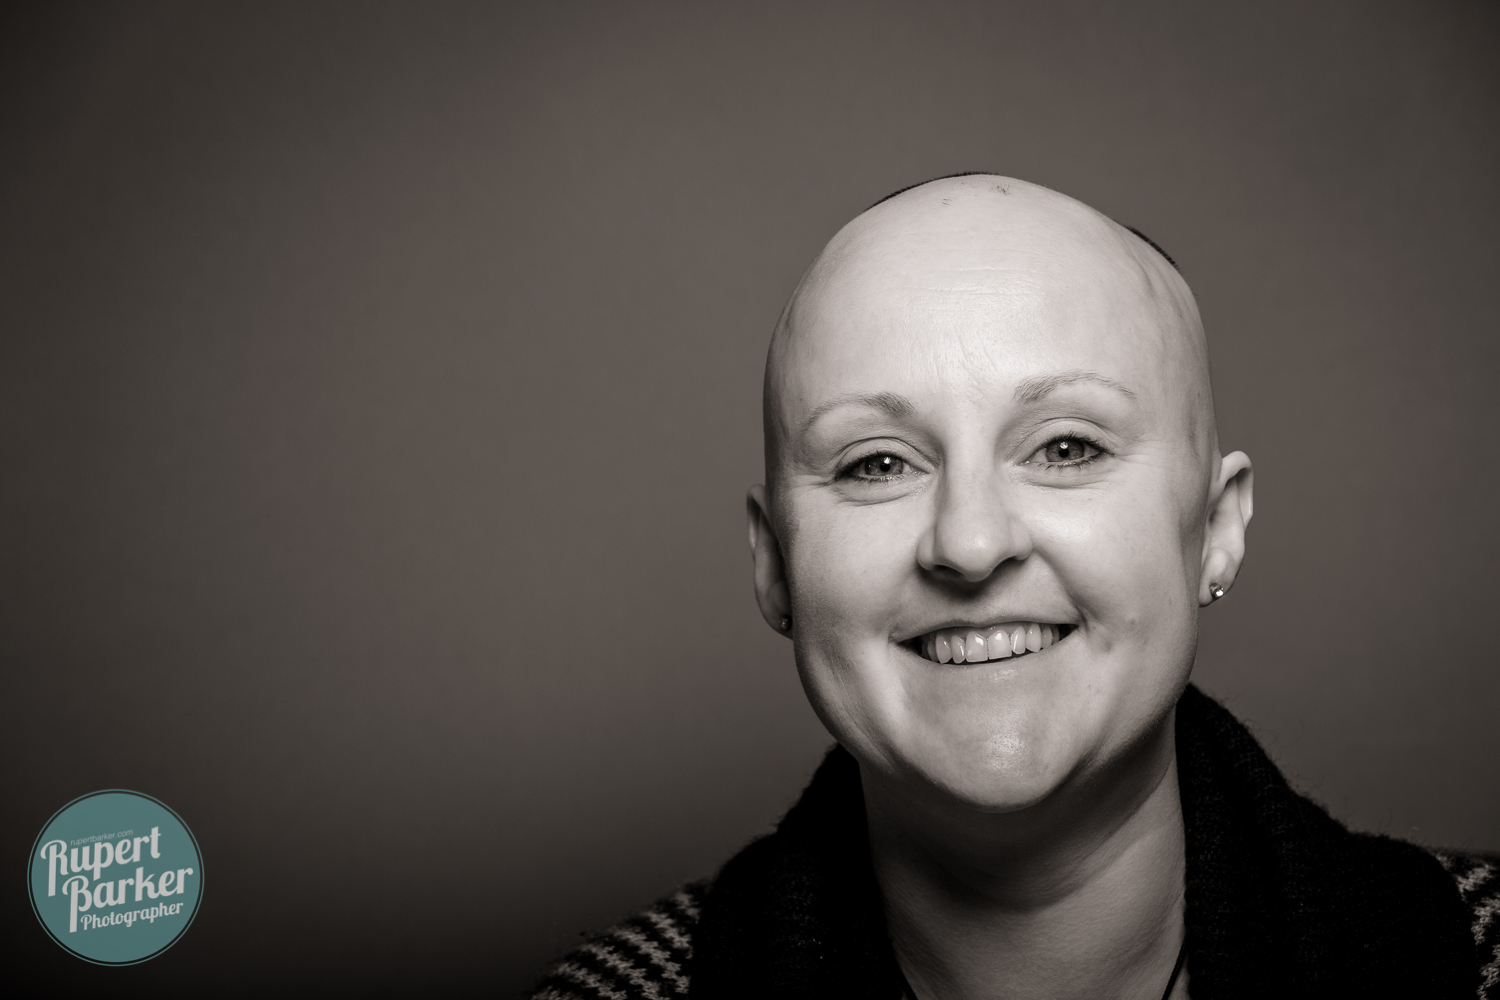 Sarah Lewis Alopecia wig bravery shaved head portrait black and white